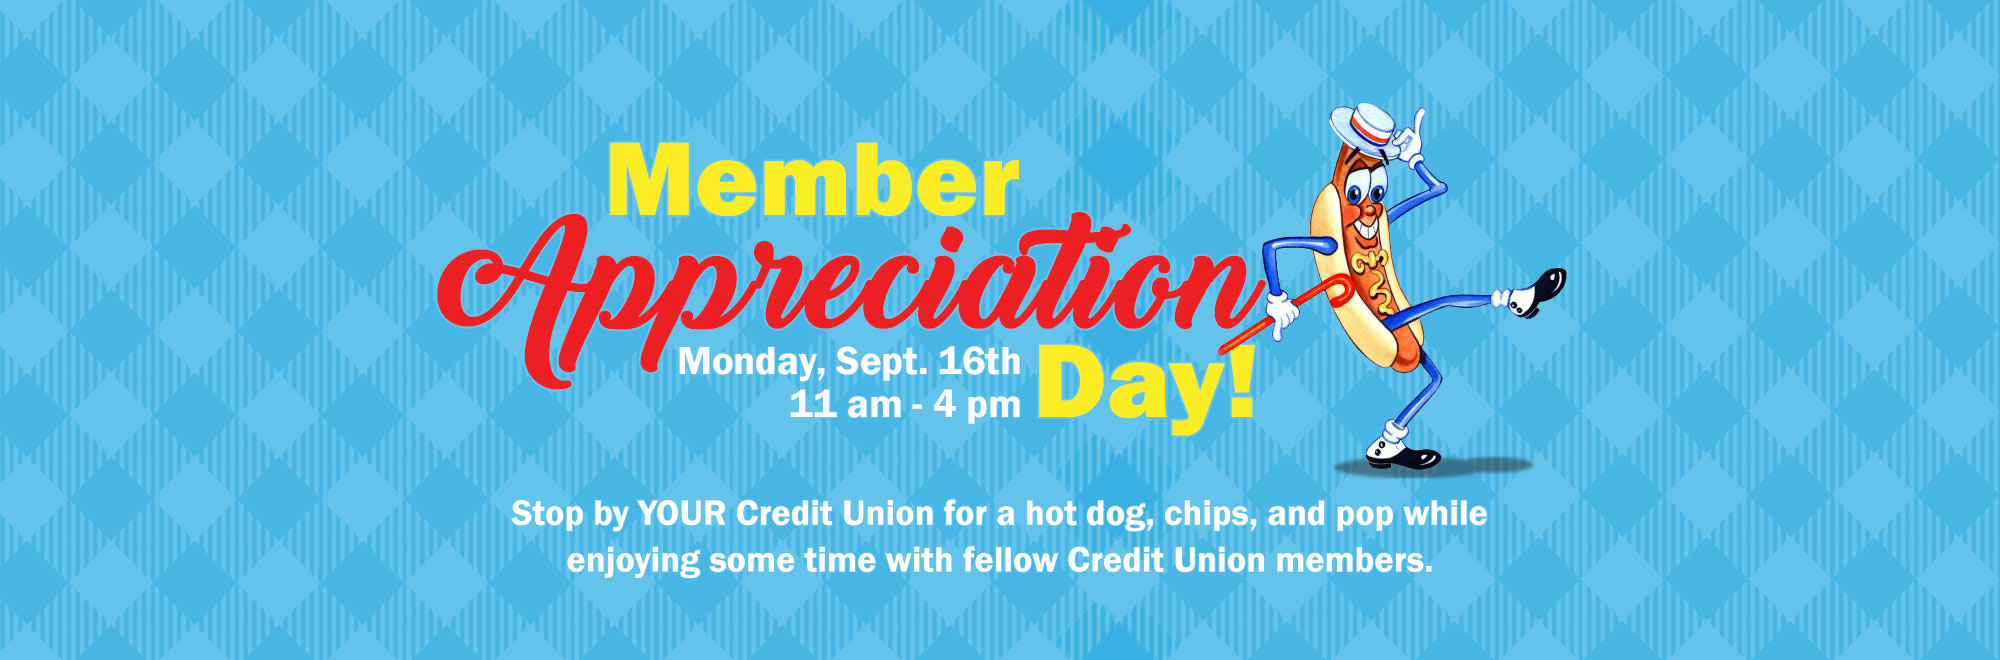 Member Appreciation Day Banner